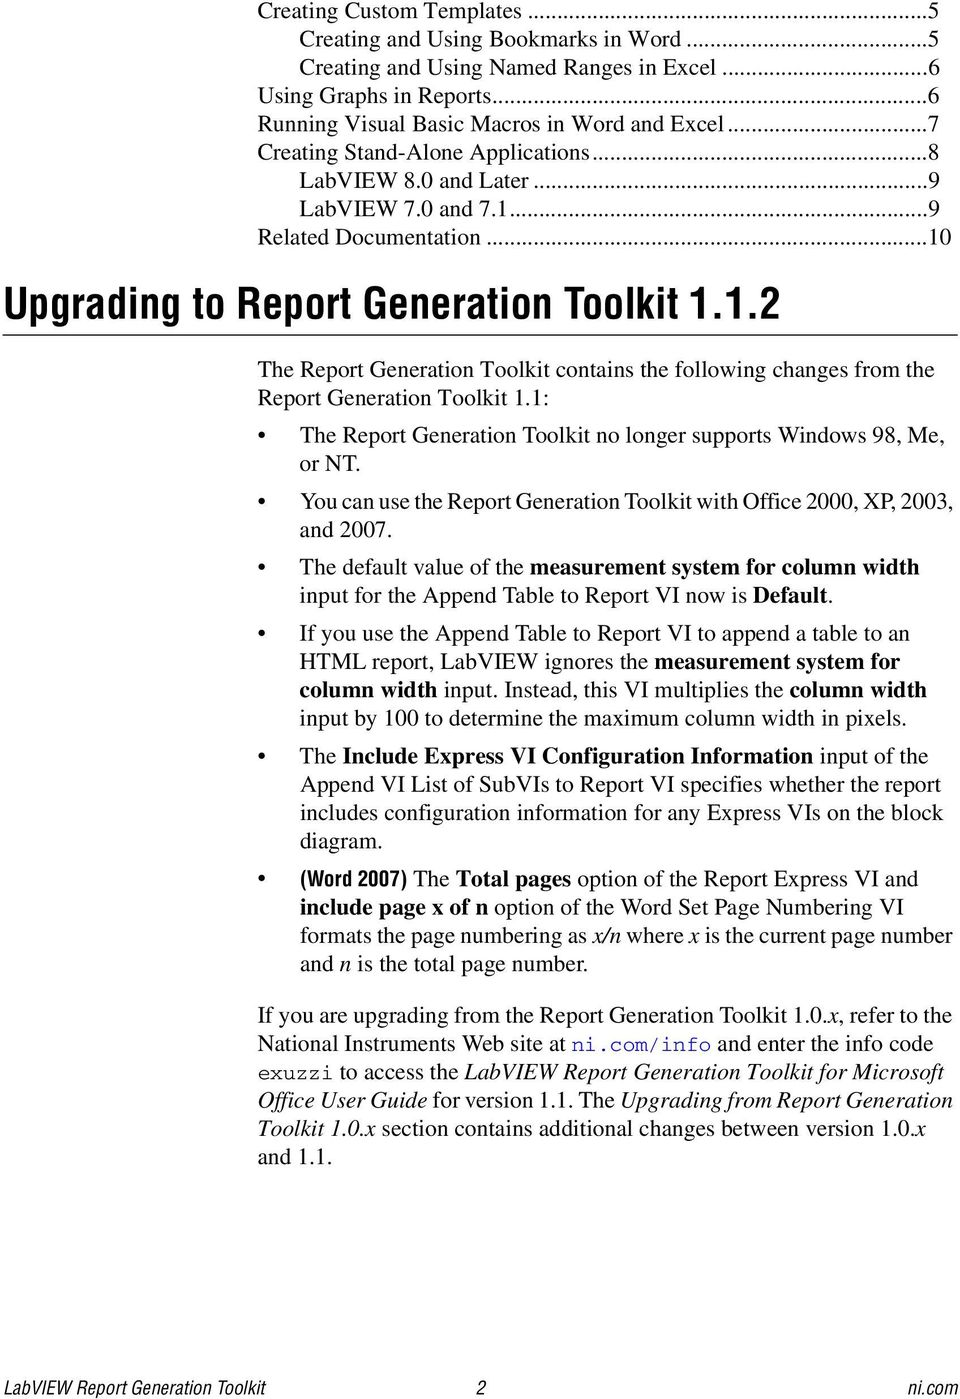 LabVIEW Report Generation Toolkit for Microsoft Office - PDF